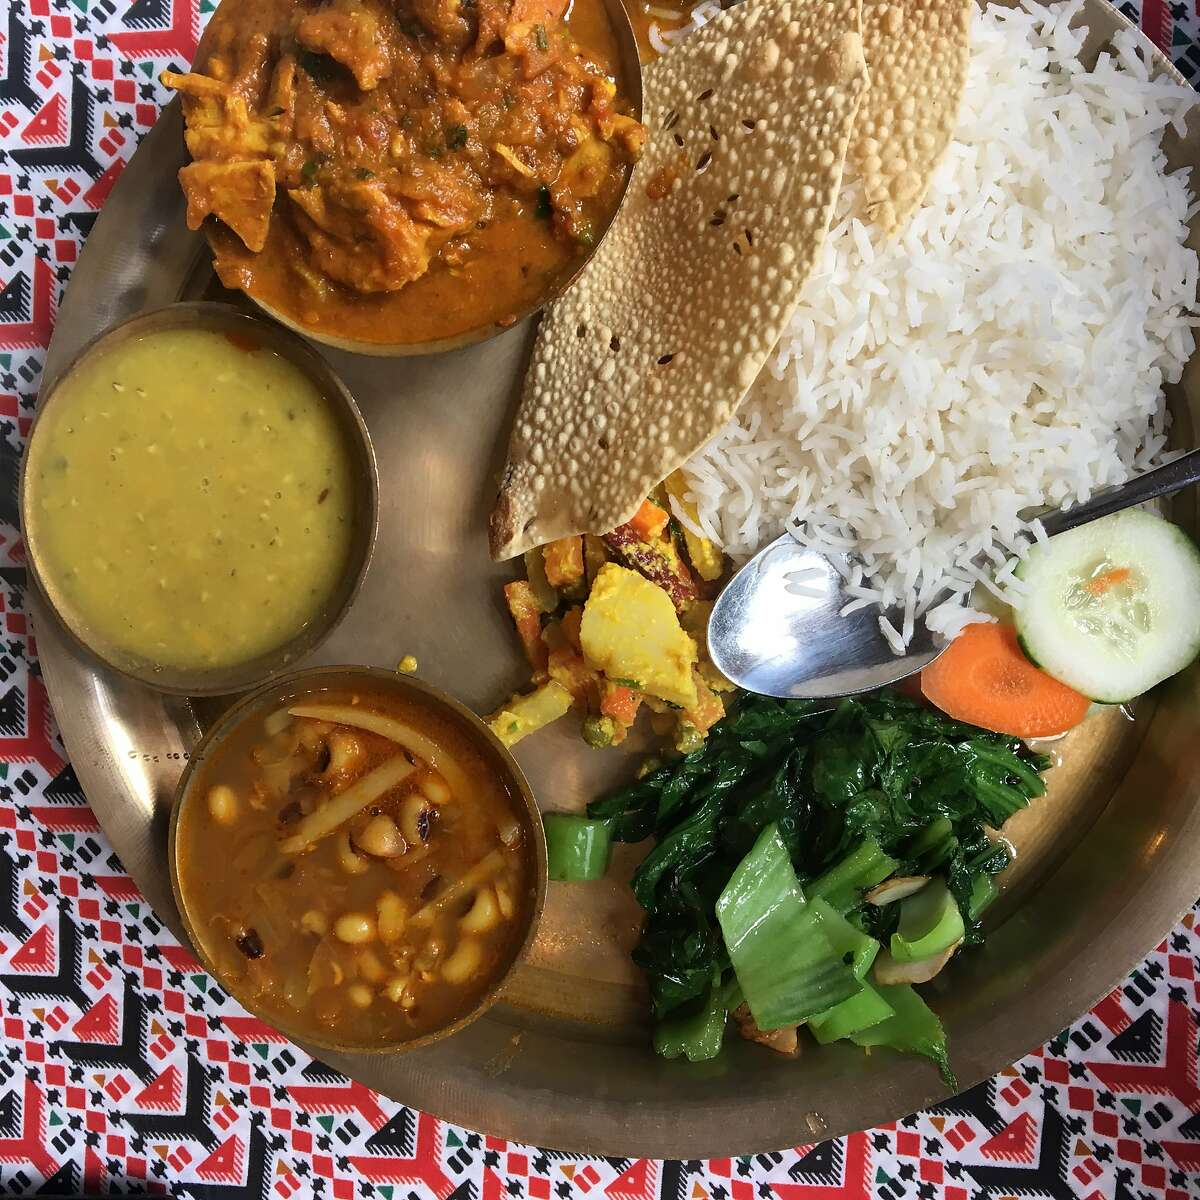 Red Chilli, a resataurant in San Francisco's Tenderloin neighborhood, serves a Nepalese thali with chicken curry, lentils, sauteed mustard greens, potatoes with bamboo shoots and black-eyed peas, and pickle.